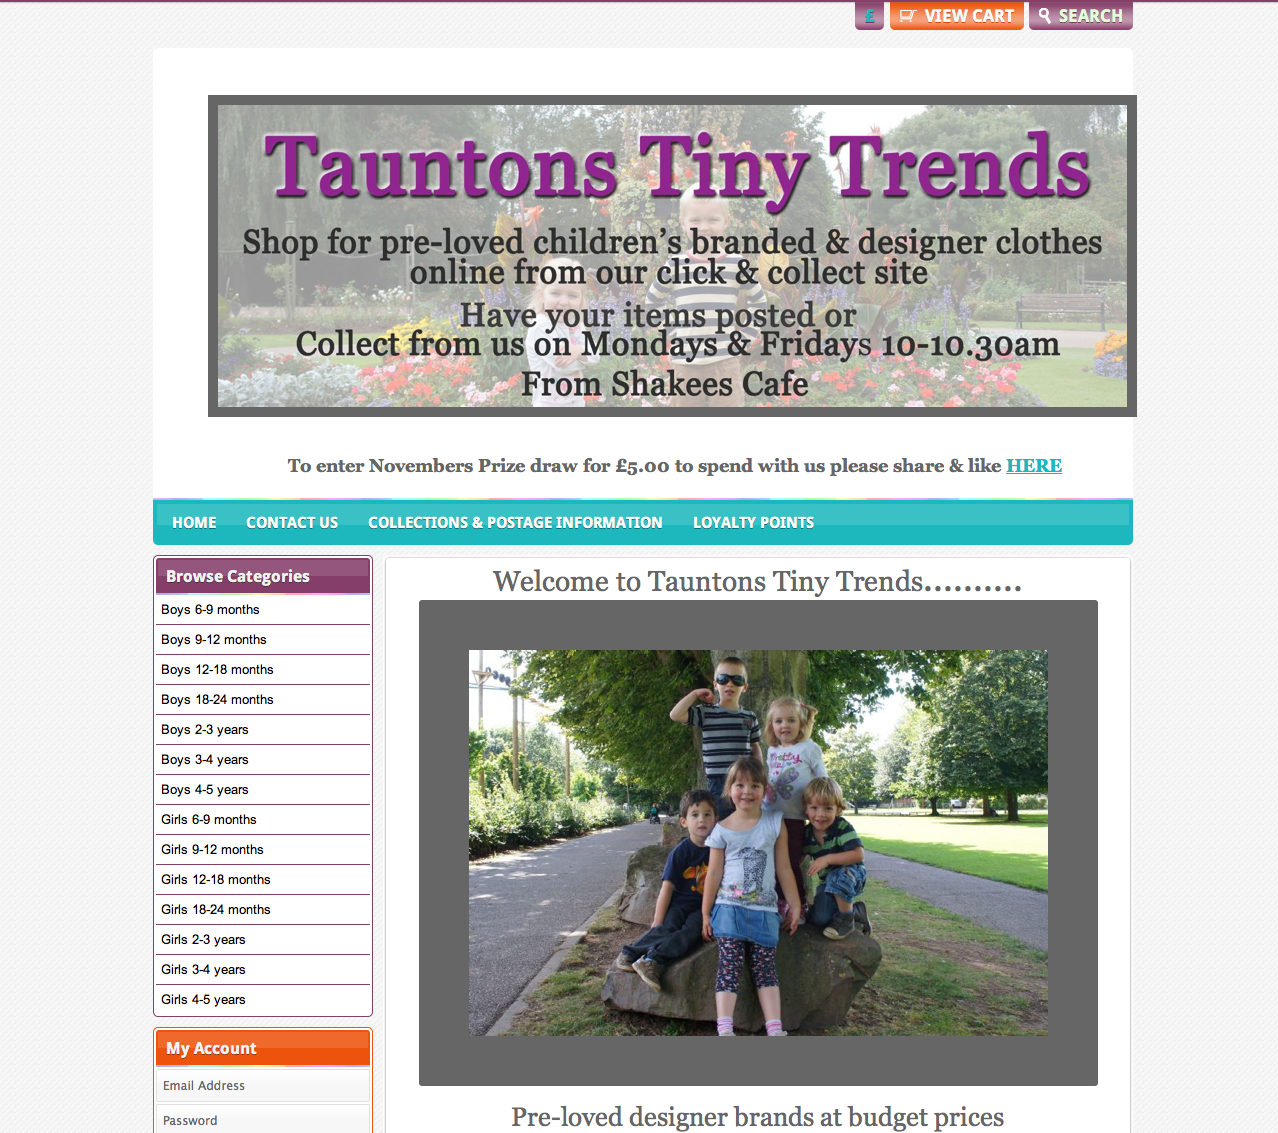 Tauntons Tiny Trends